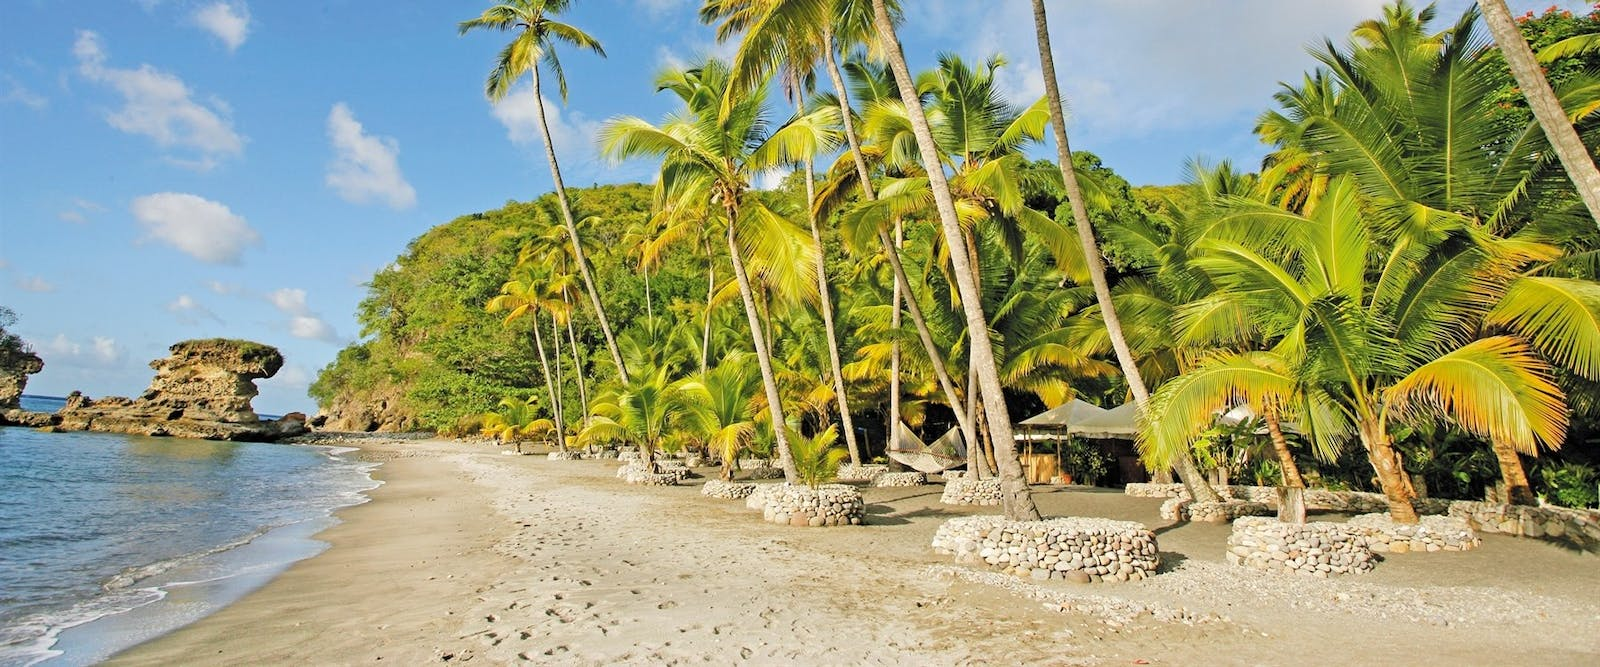 Beach Area at Anse Chastanet, St Lucia